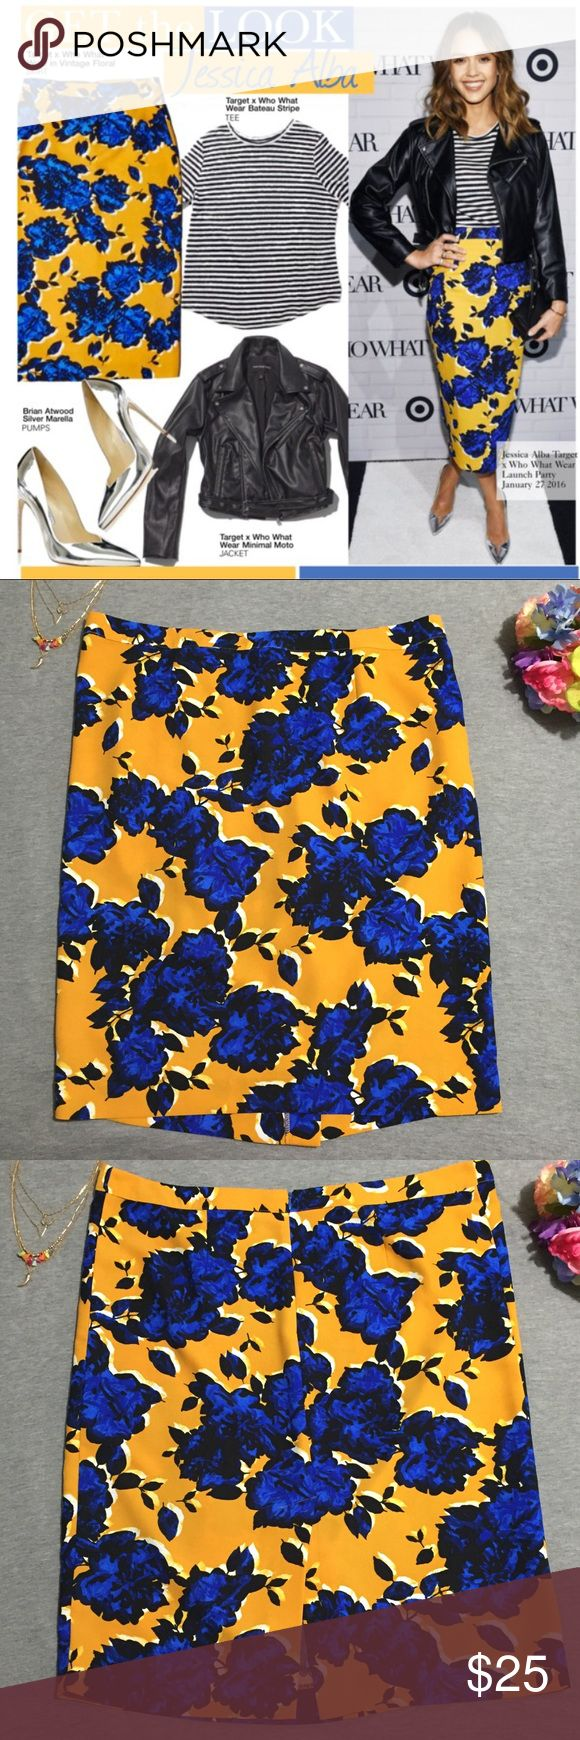 Who What Wear Floral Tailored Skirt for Target This gorgeous bright blue, black and mustard yellow print is the perfect piece for a bold look! A midi skirt with a small slit in the back! Excellent condition, no flaws! Waist: 22 in Hip: 24.5 in Length: 28 in WhoWhatWear Skirts Pencil